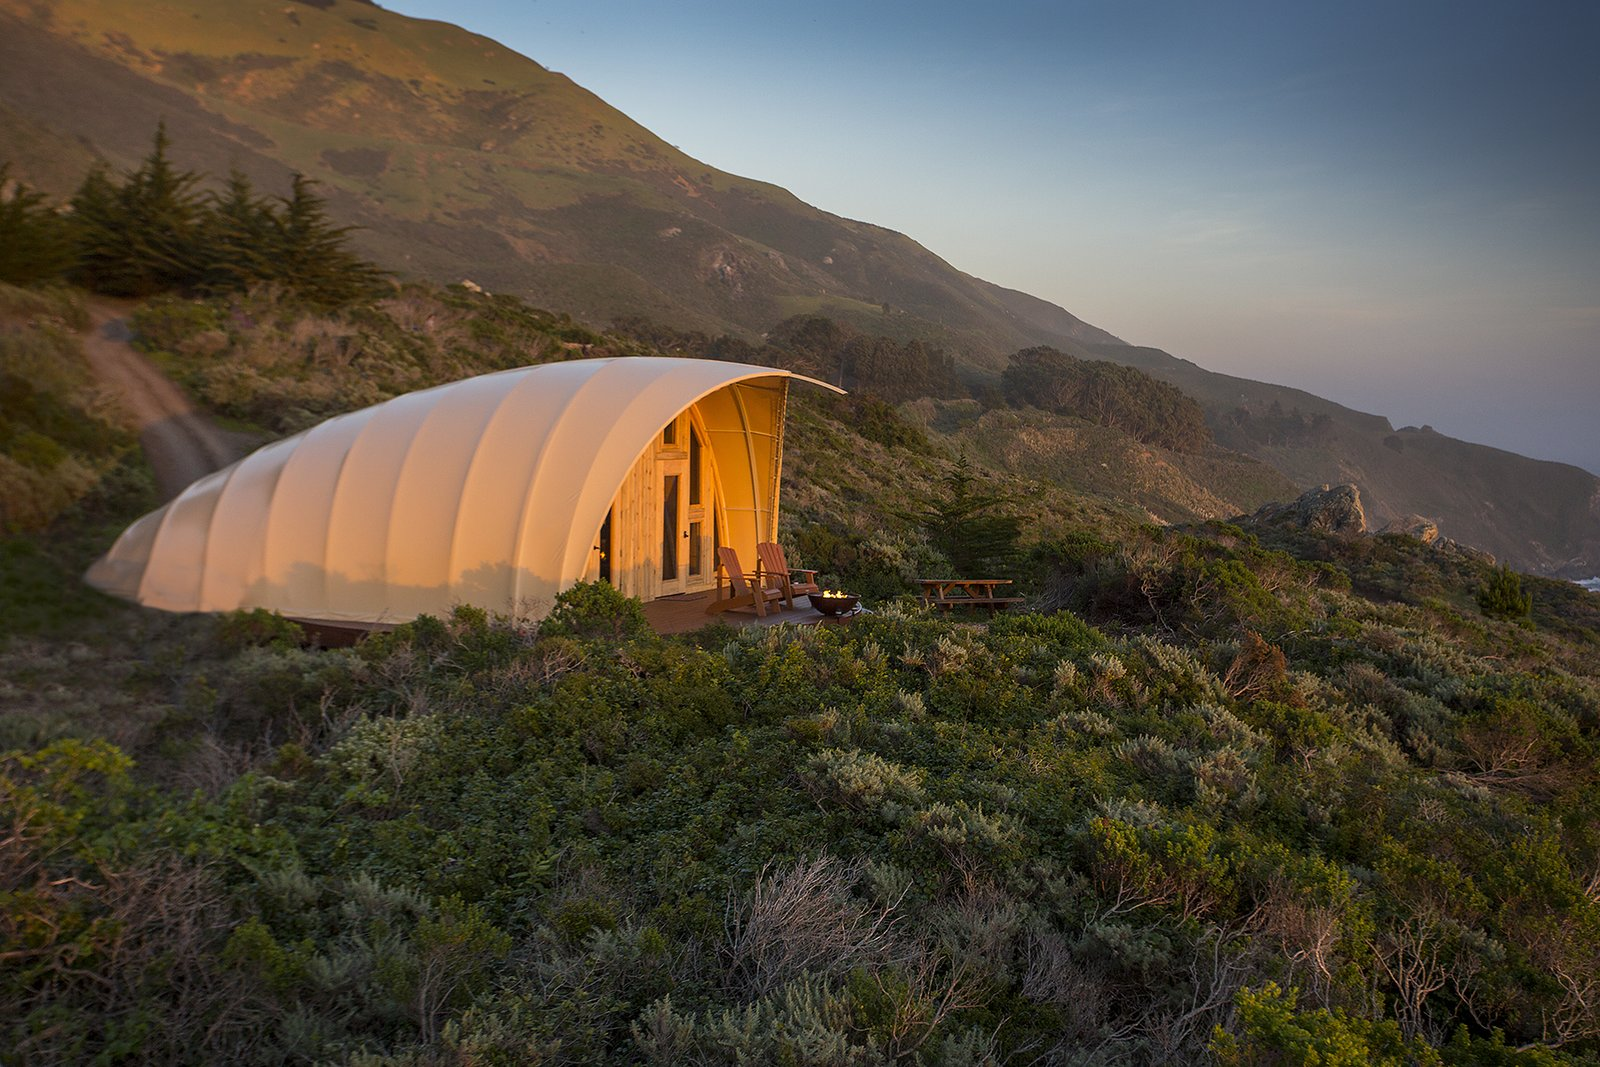 Photo 6 of 6 in Sleep in a Translucent Cocoon for $495 a Night